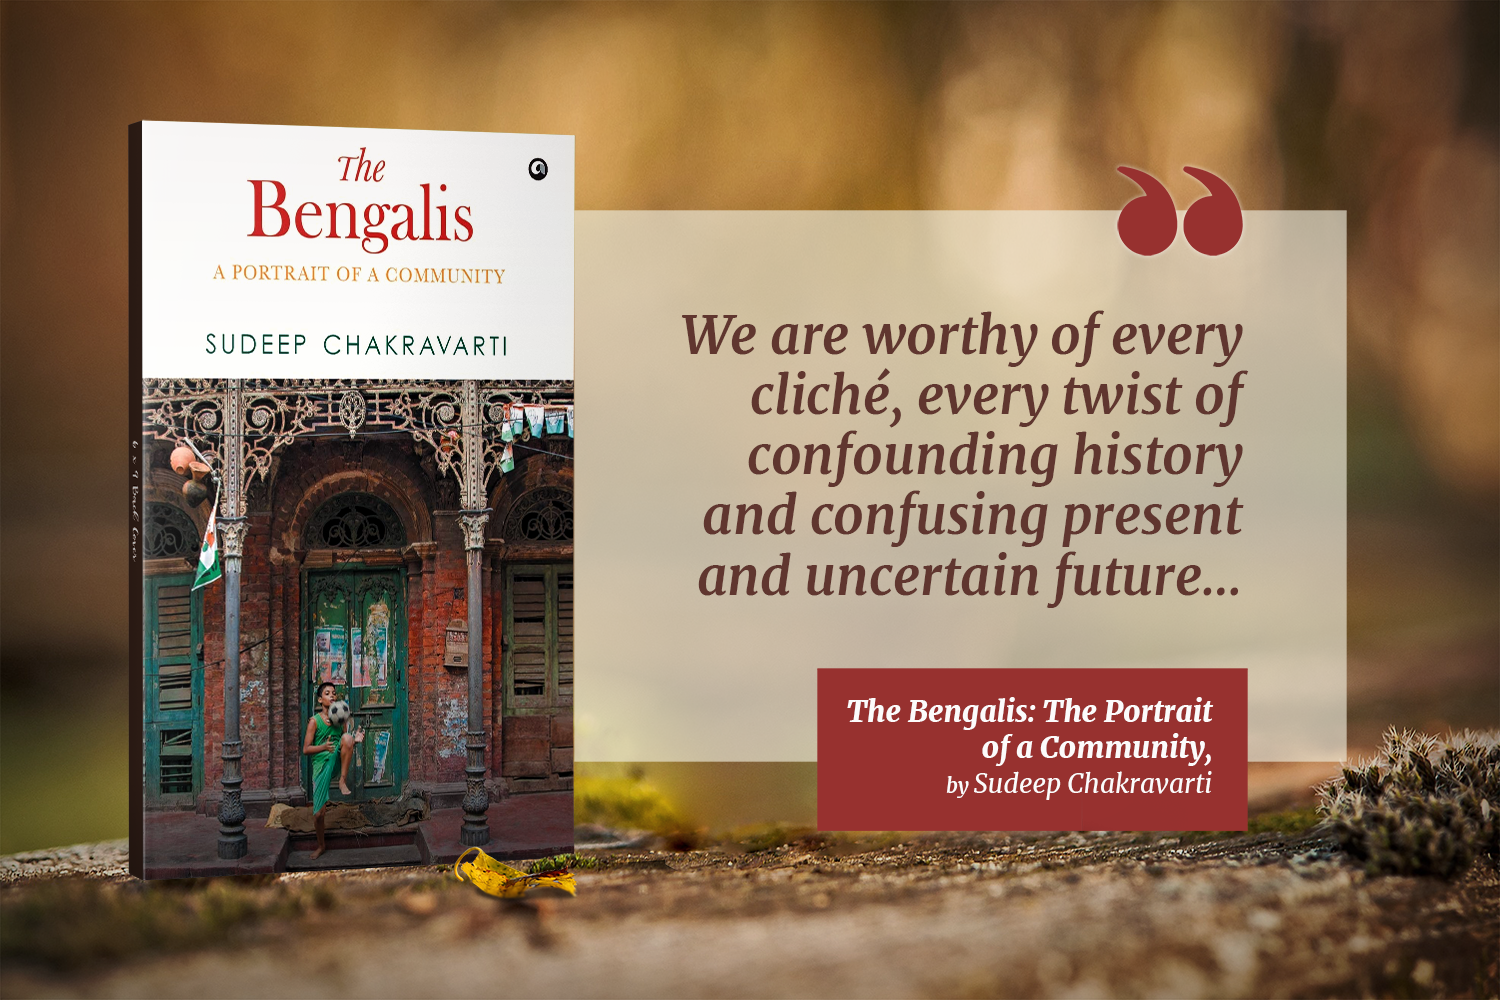 Lessons from Books: A Fascinating Dive into the Makeup of The Bengalis